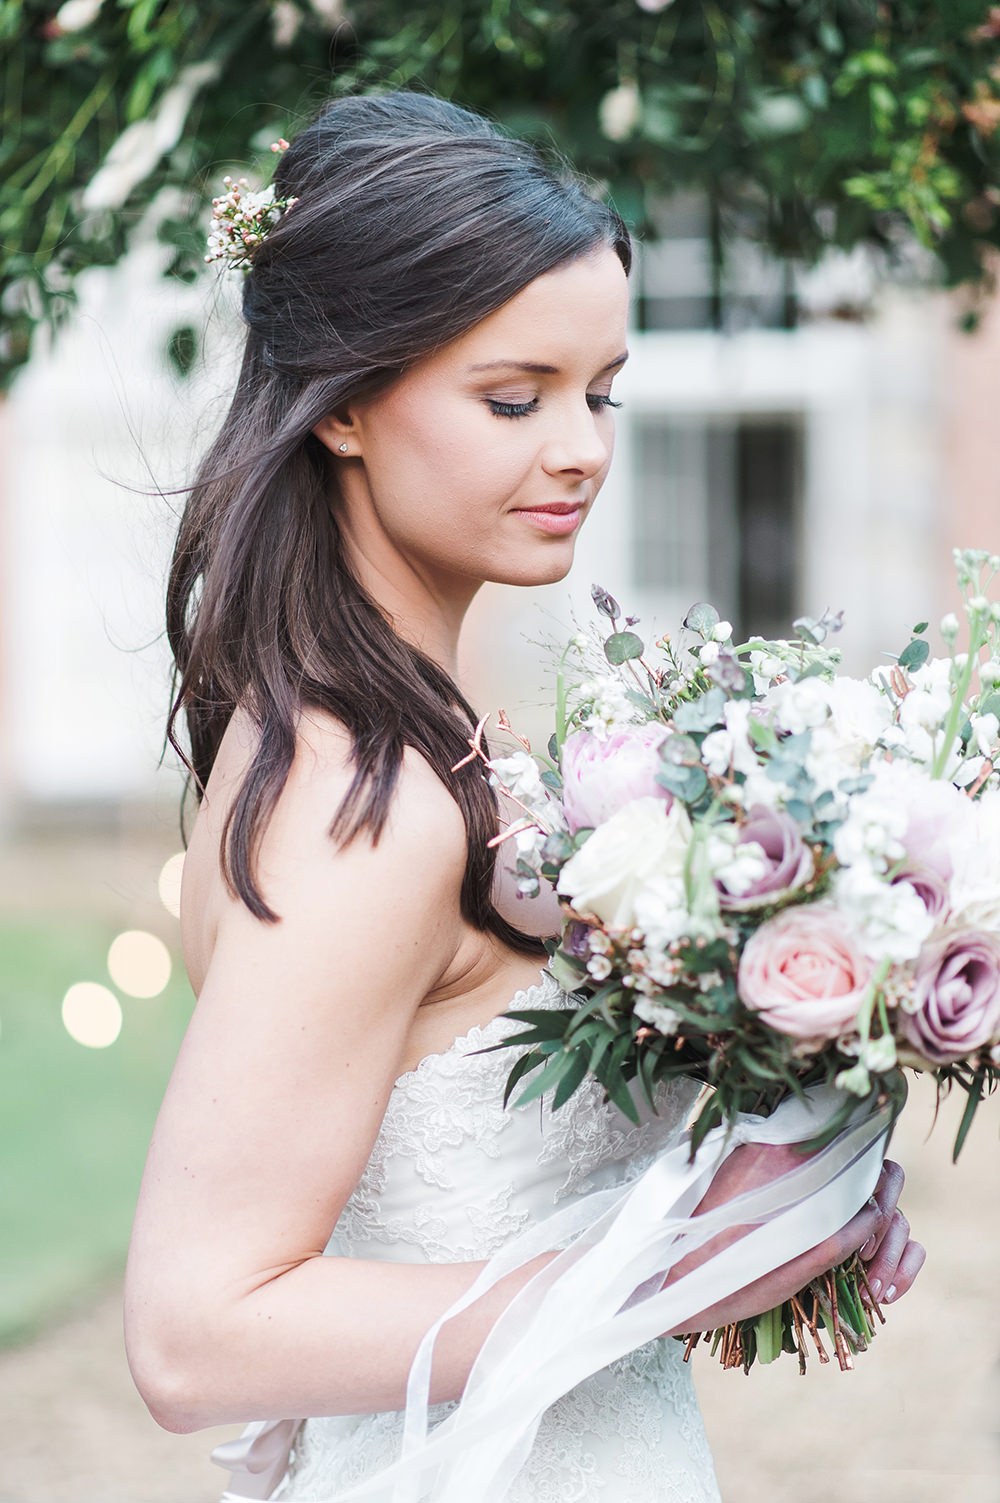 Bride Bridal Gown Dress Strapless Sweetheart Neckline Ribbon Belt Pink Bouquet Rose Peony Ribbon Edmondsham House Wedding Darima Frampton Photography